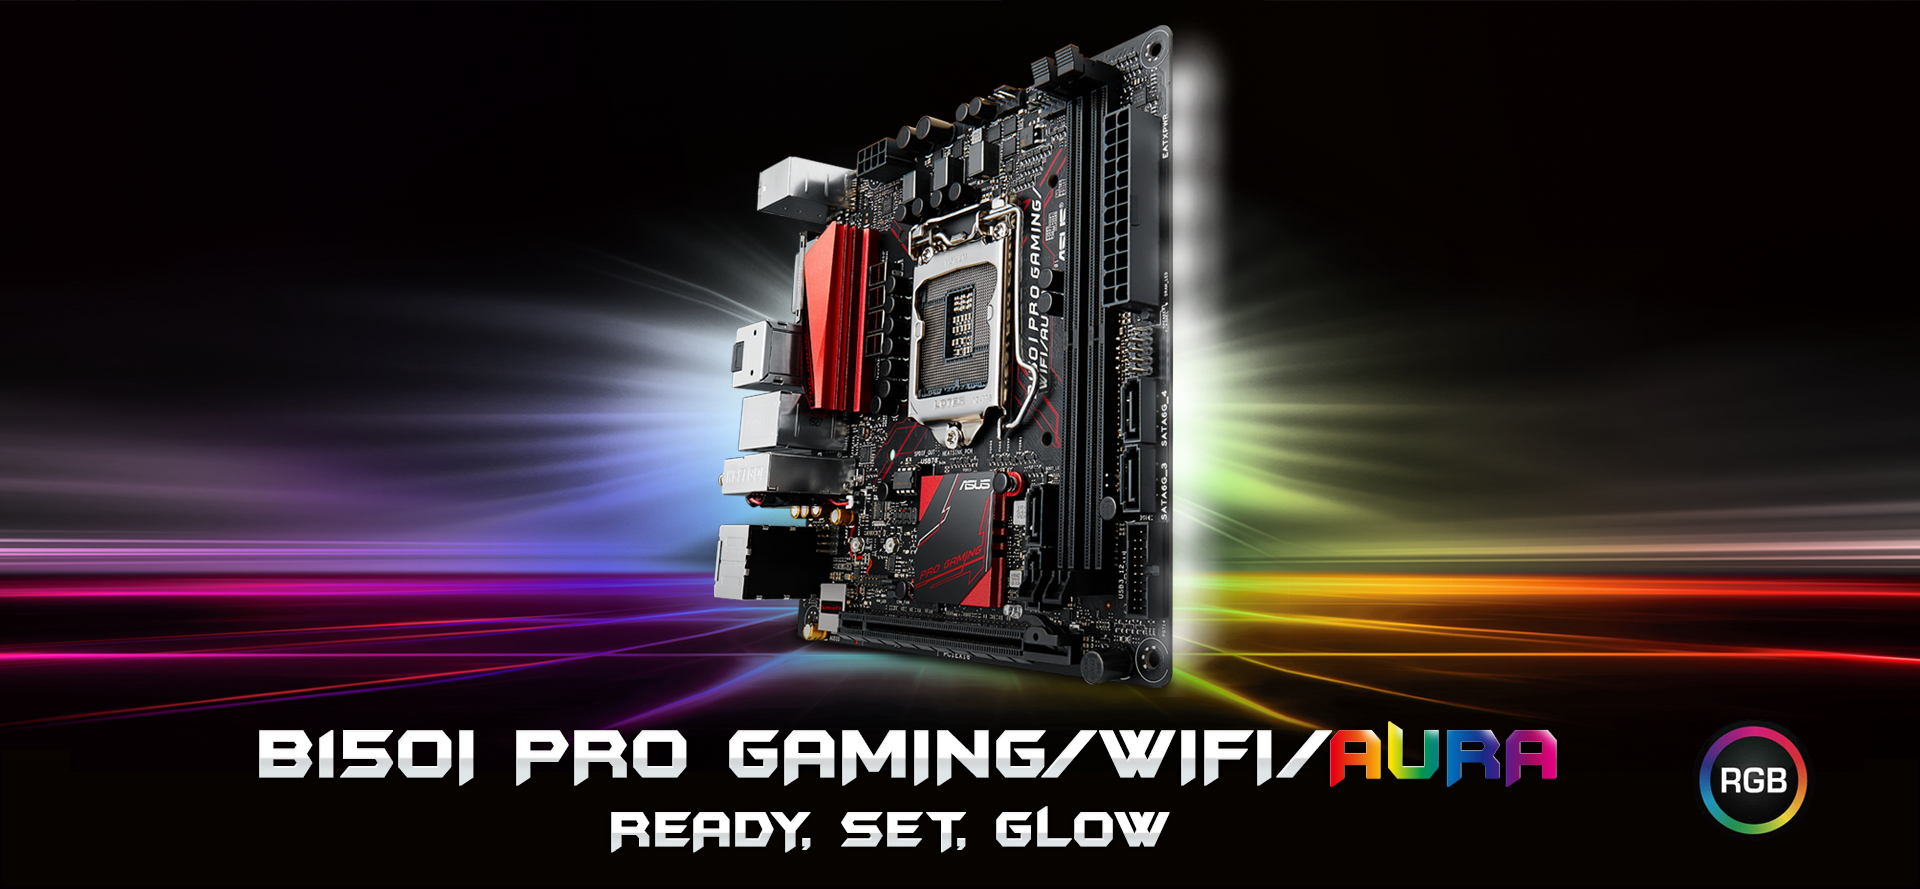 ASUS B150I Pro Gaming/WIFI/Aura Intel Graphics Drivers for PC